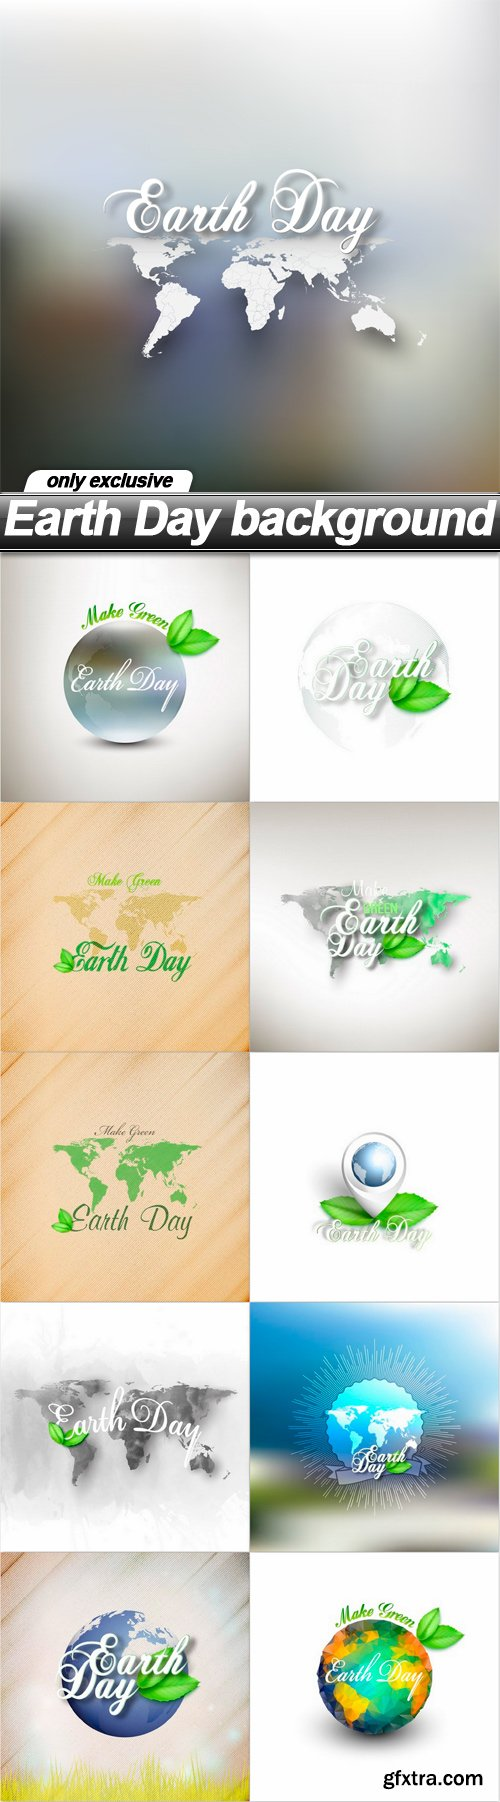 Earth Day background - 11 EPS